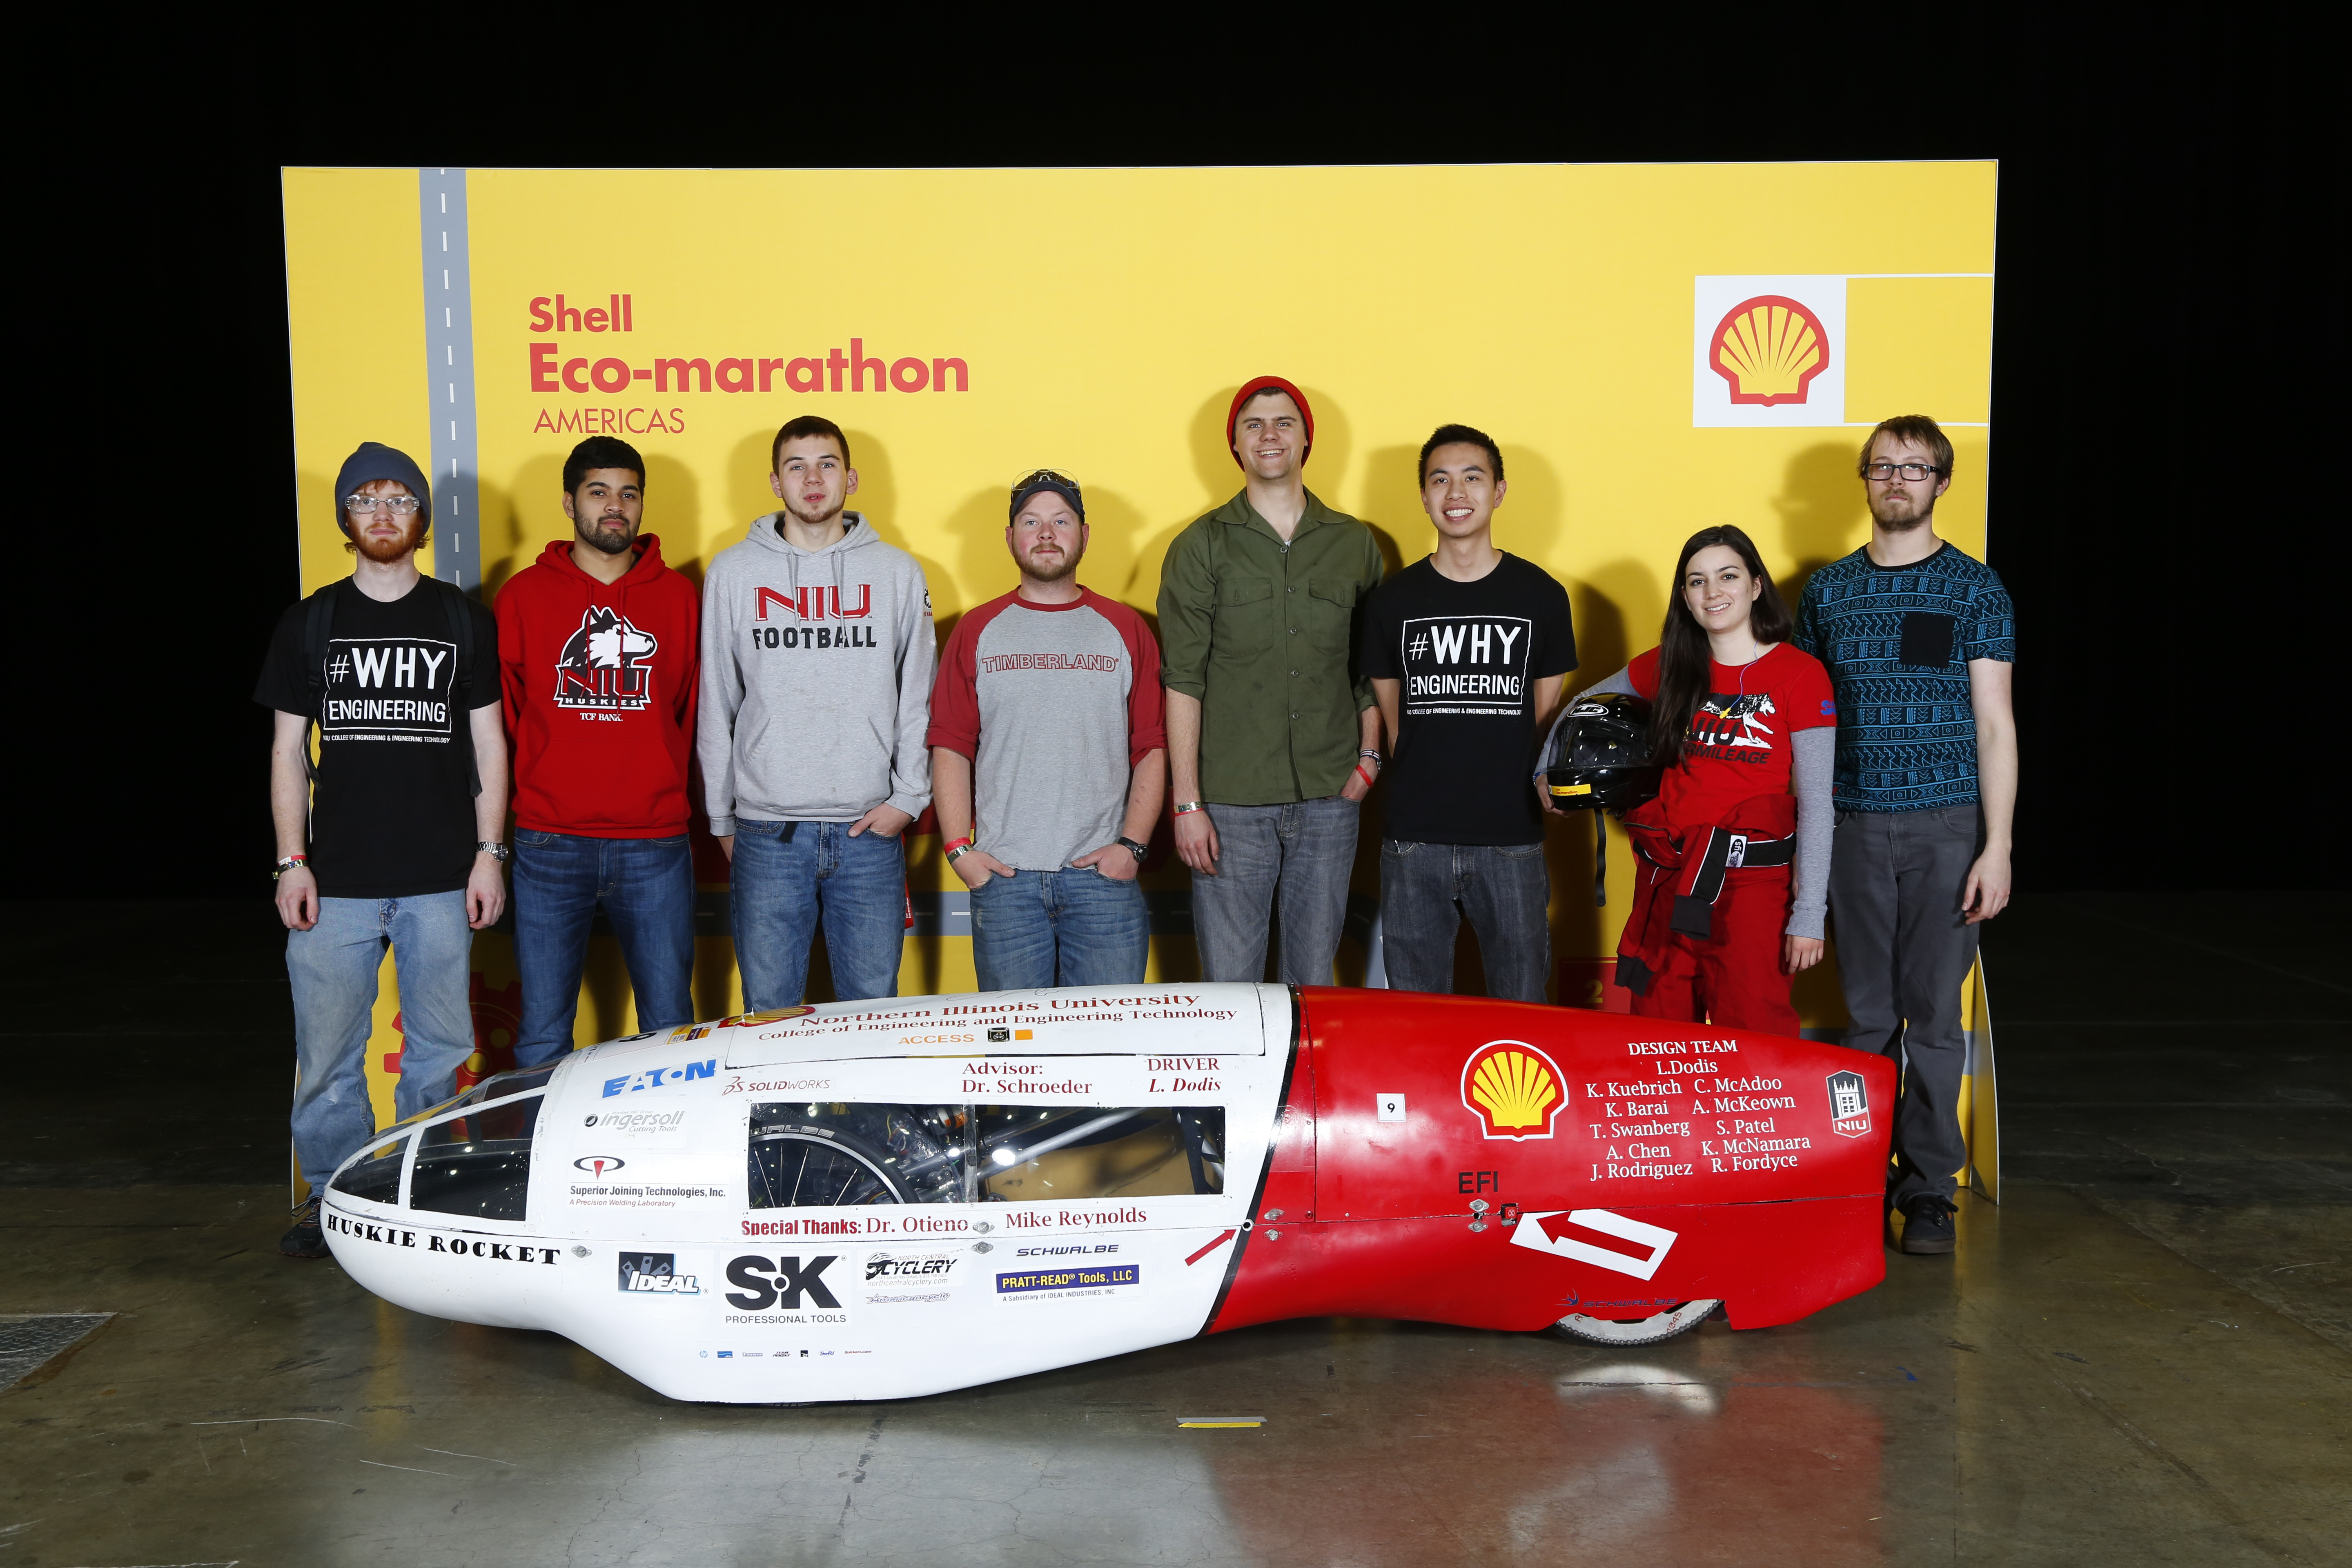 Will Niu Shell Eco Marathon Engineers Exchange Cars With